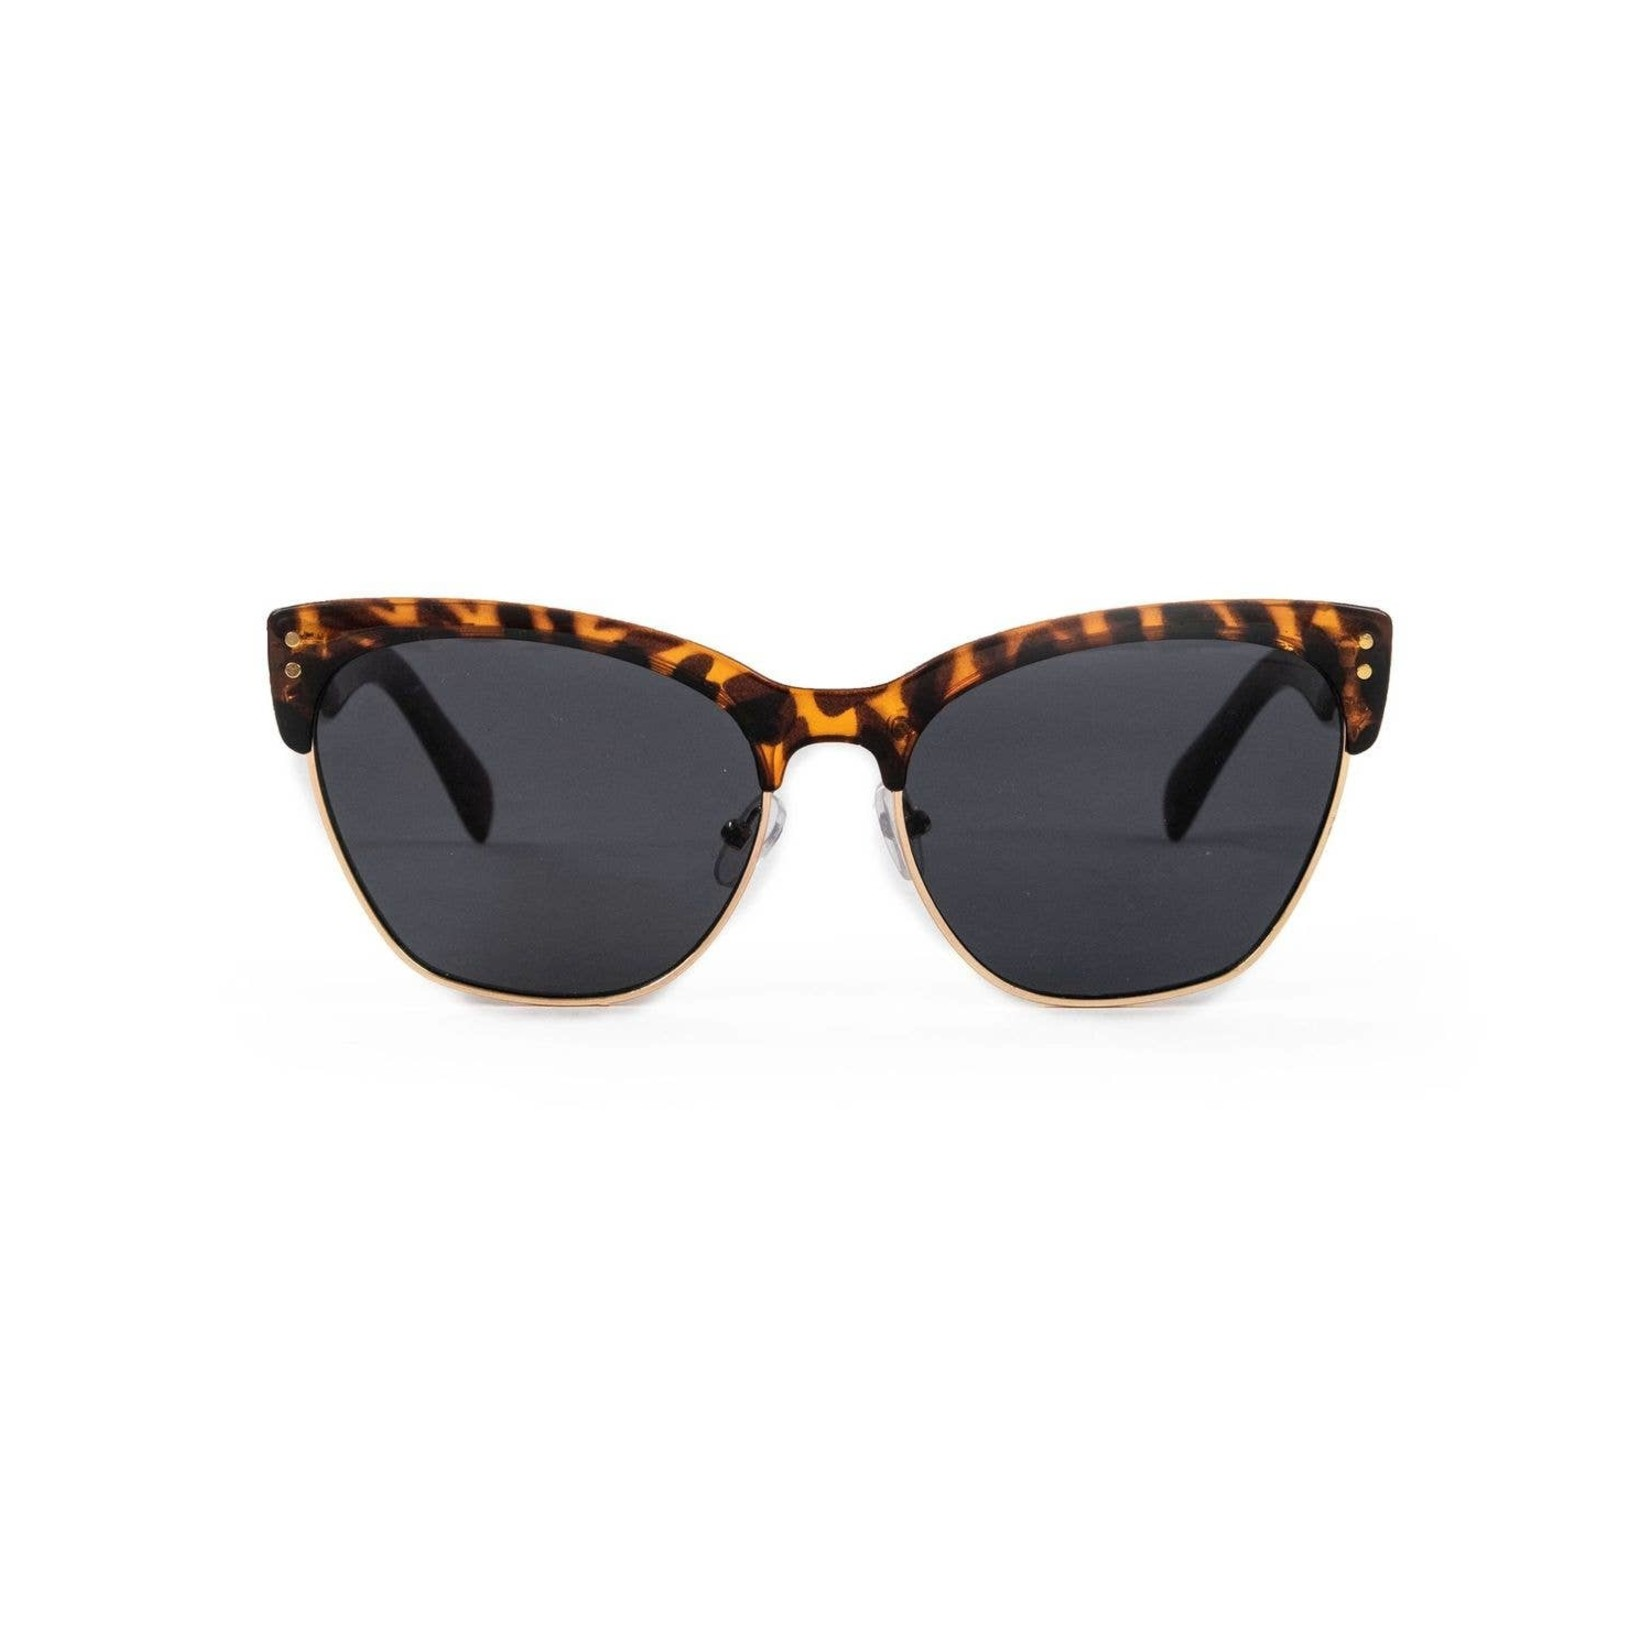 Powder Marnie Sunglasses